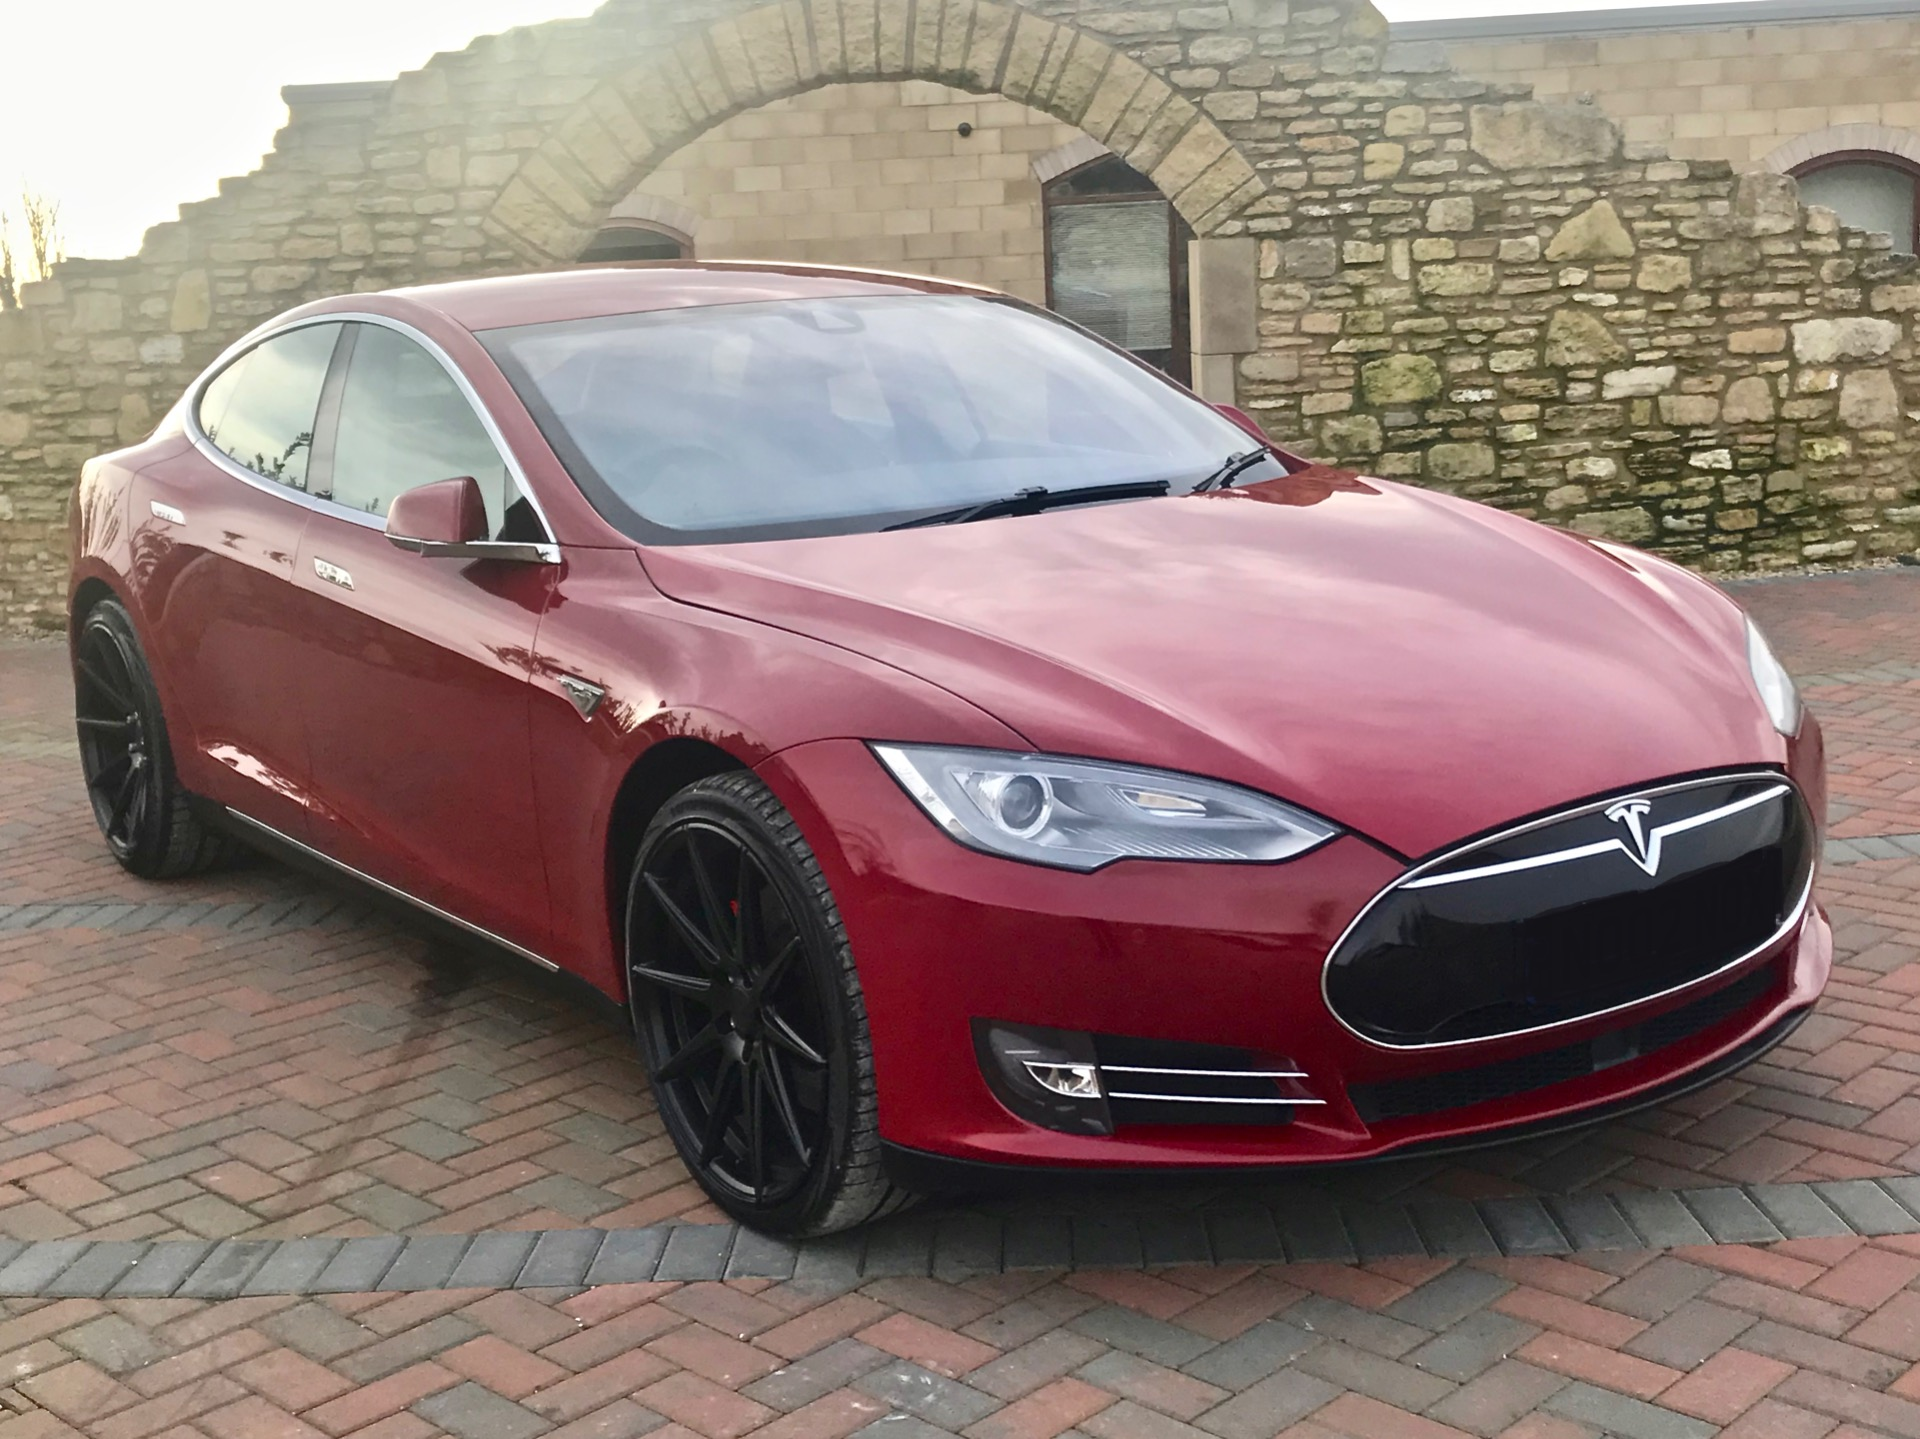 Used Tesla Model S P85 Performance 85 KWh 5 Doors Hatchback for sale